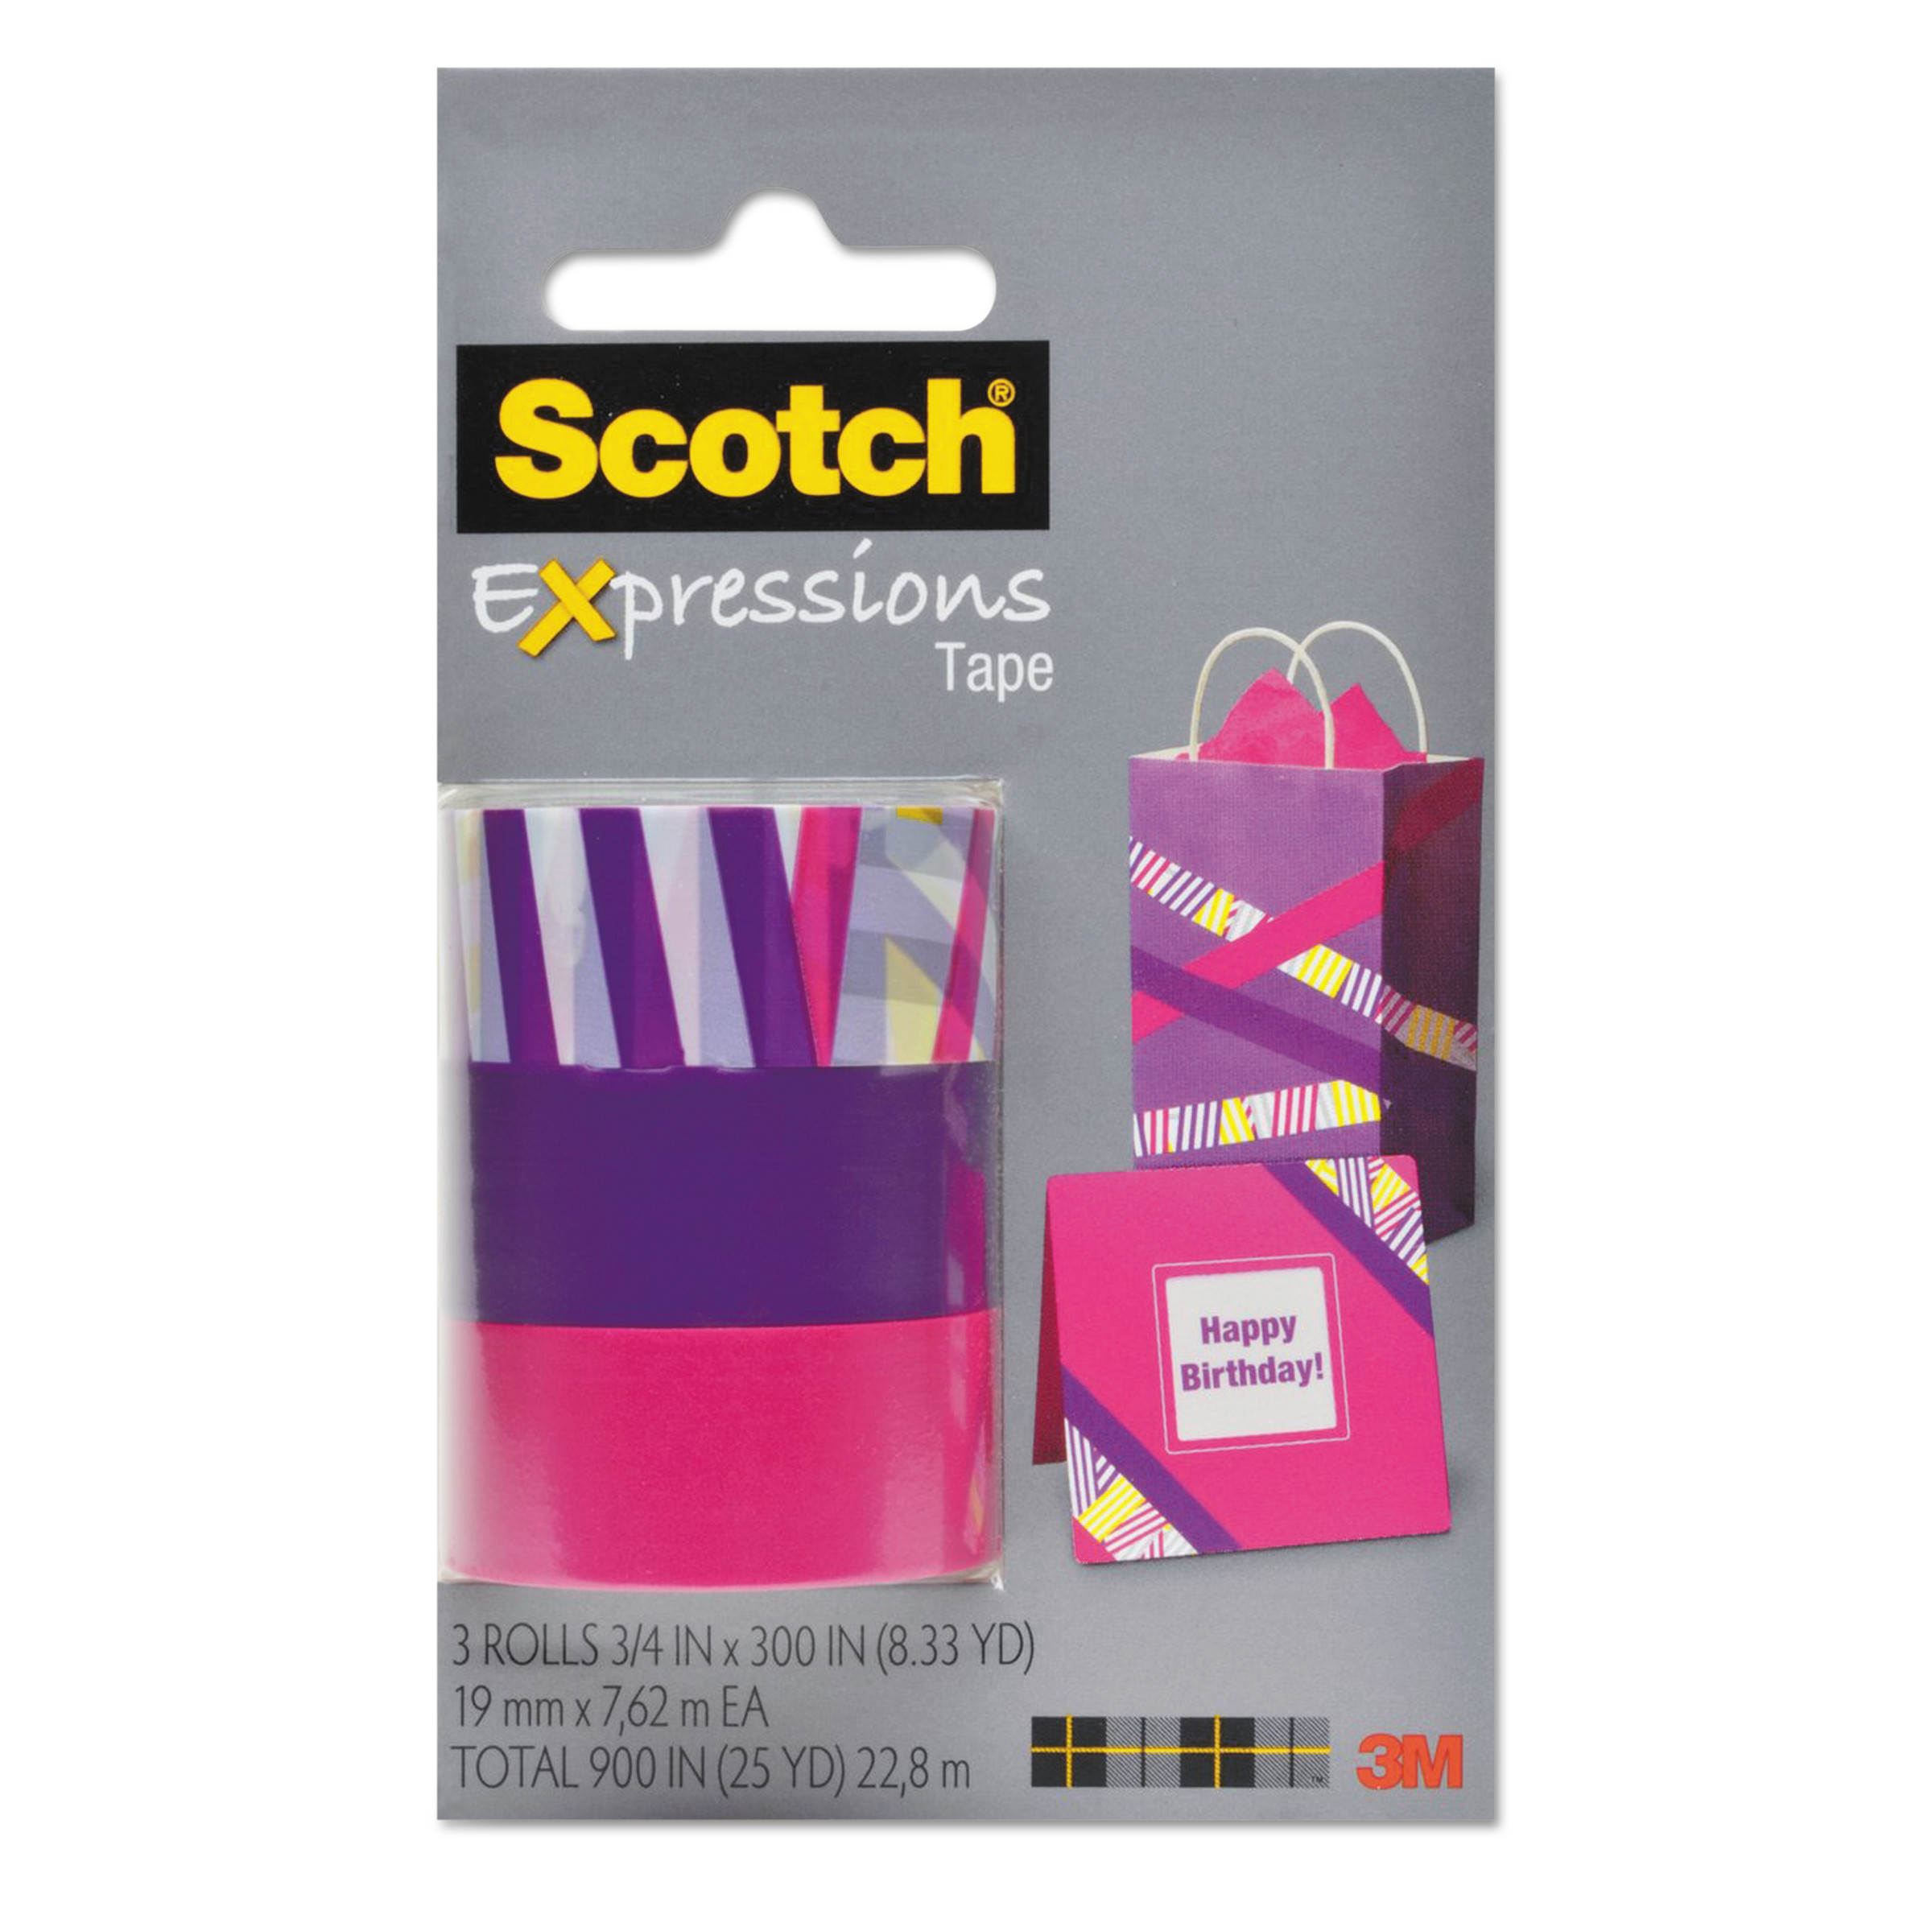 "Scotch Expressions Magic Tape, 3/4"" x 300"", Assorted Preppy, 3/Pack"